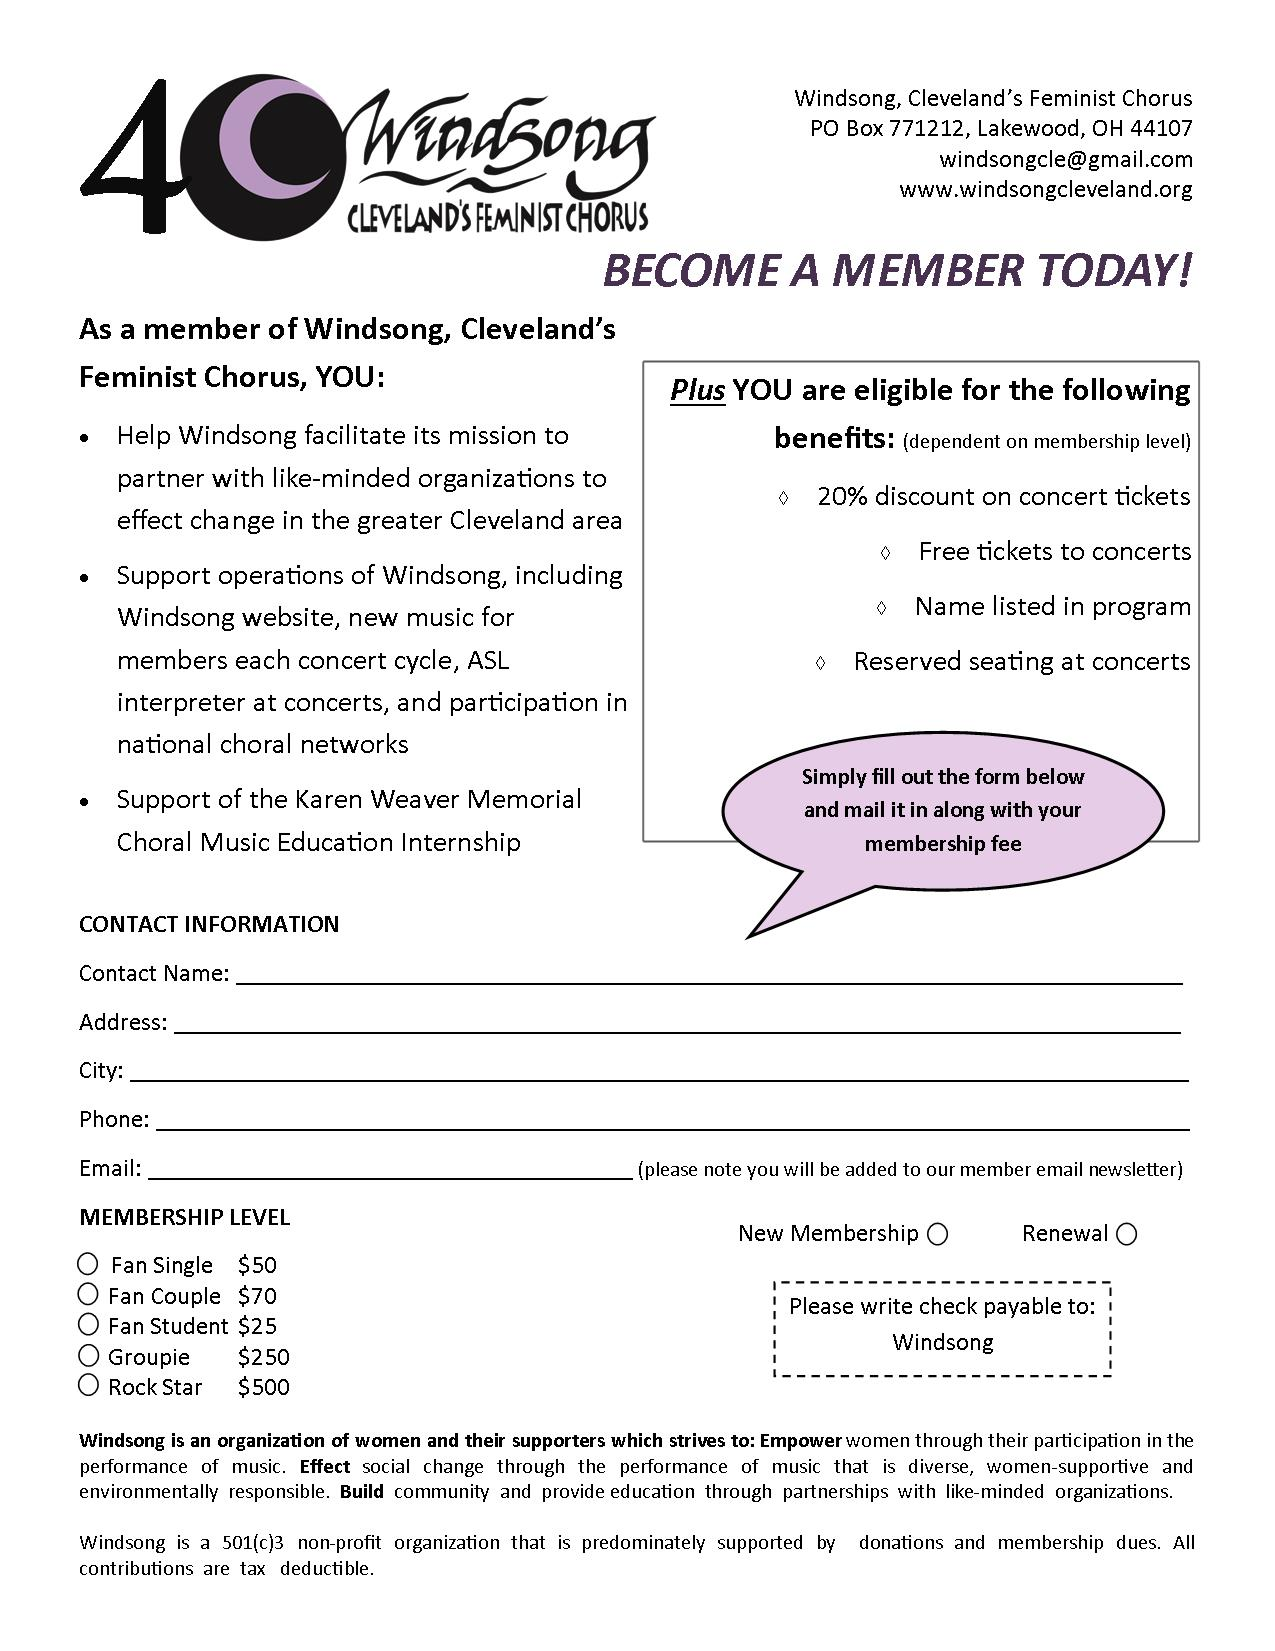 Windsong Membership Levels mail in form.jpg